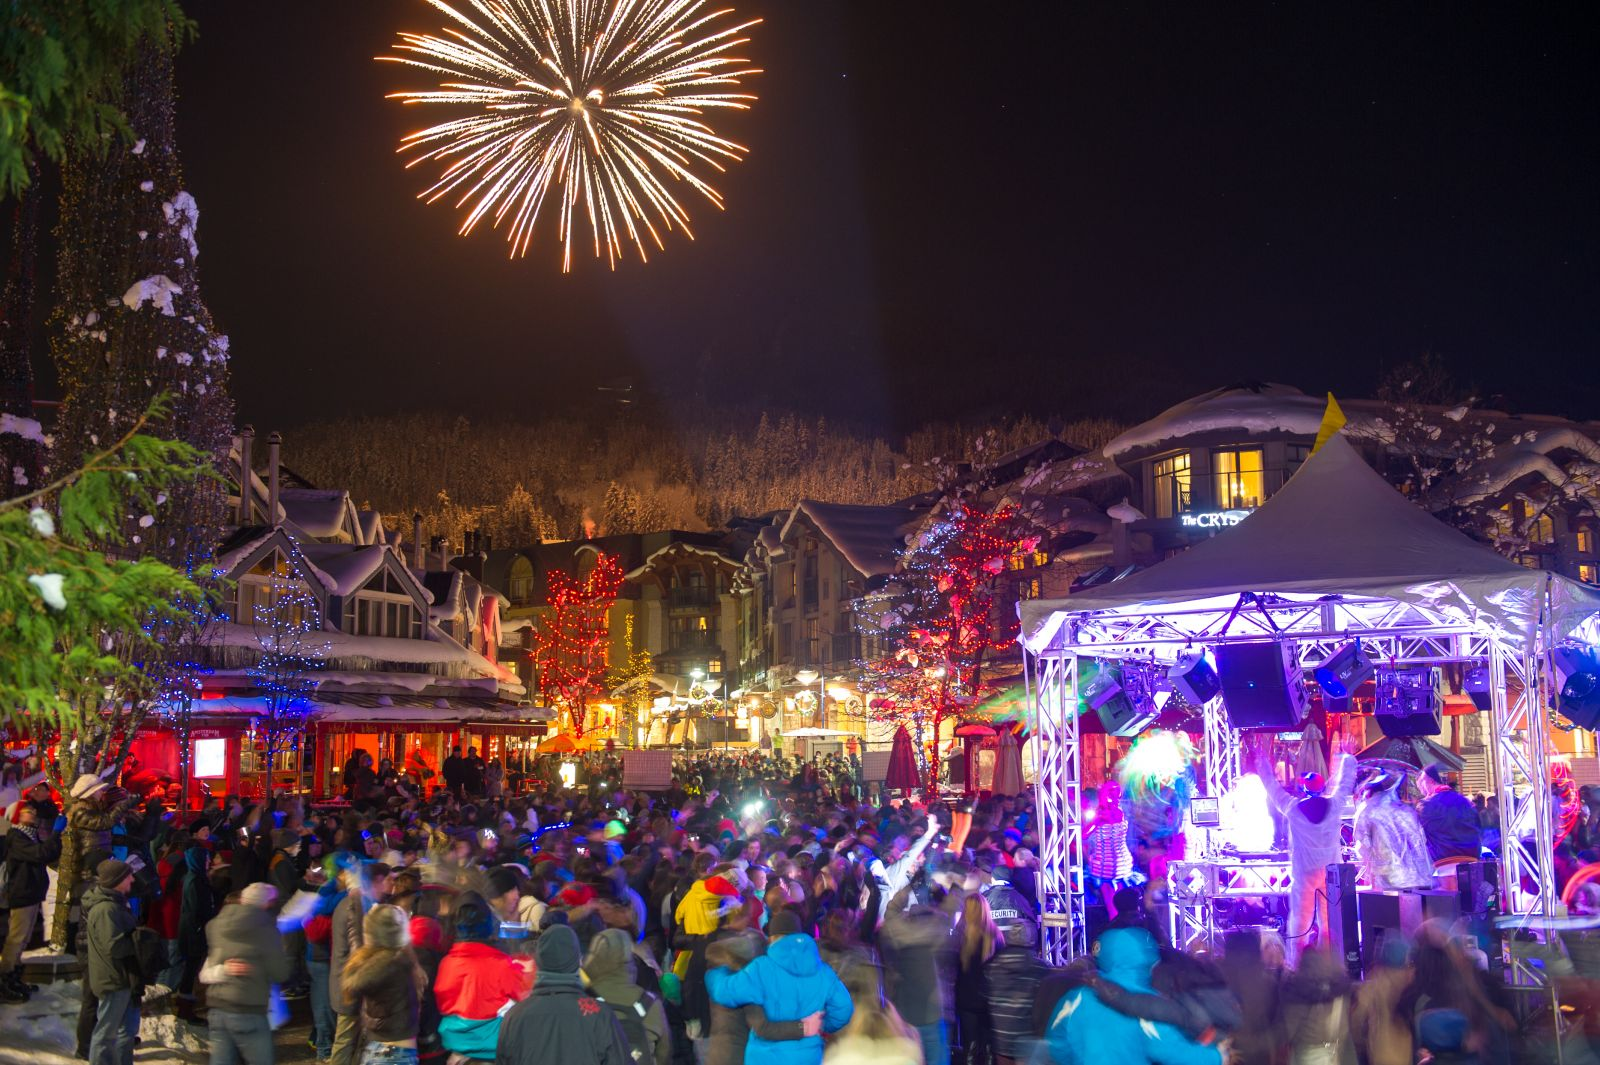 Whistler New Year's Eve fireworks